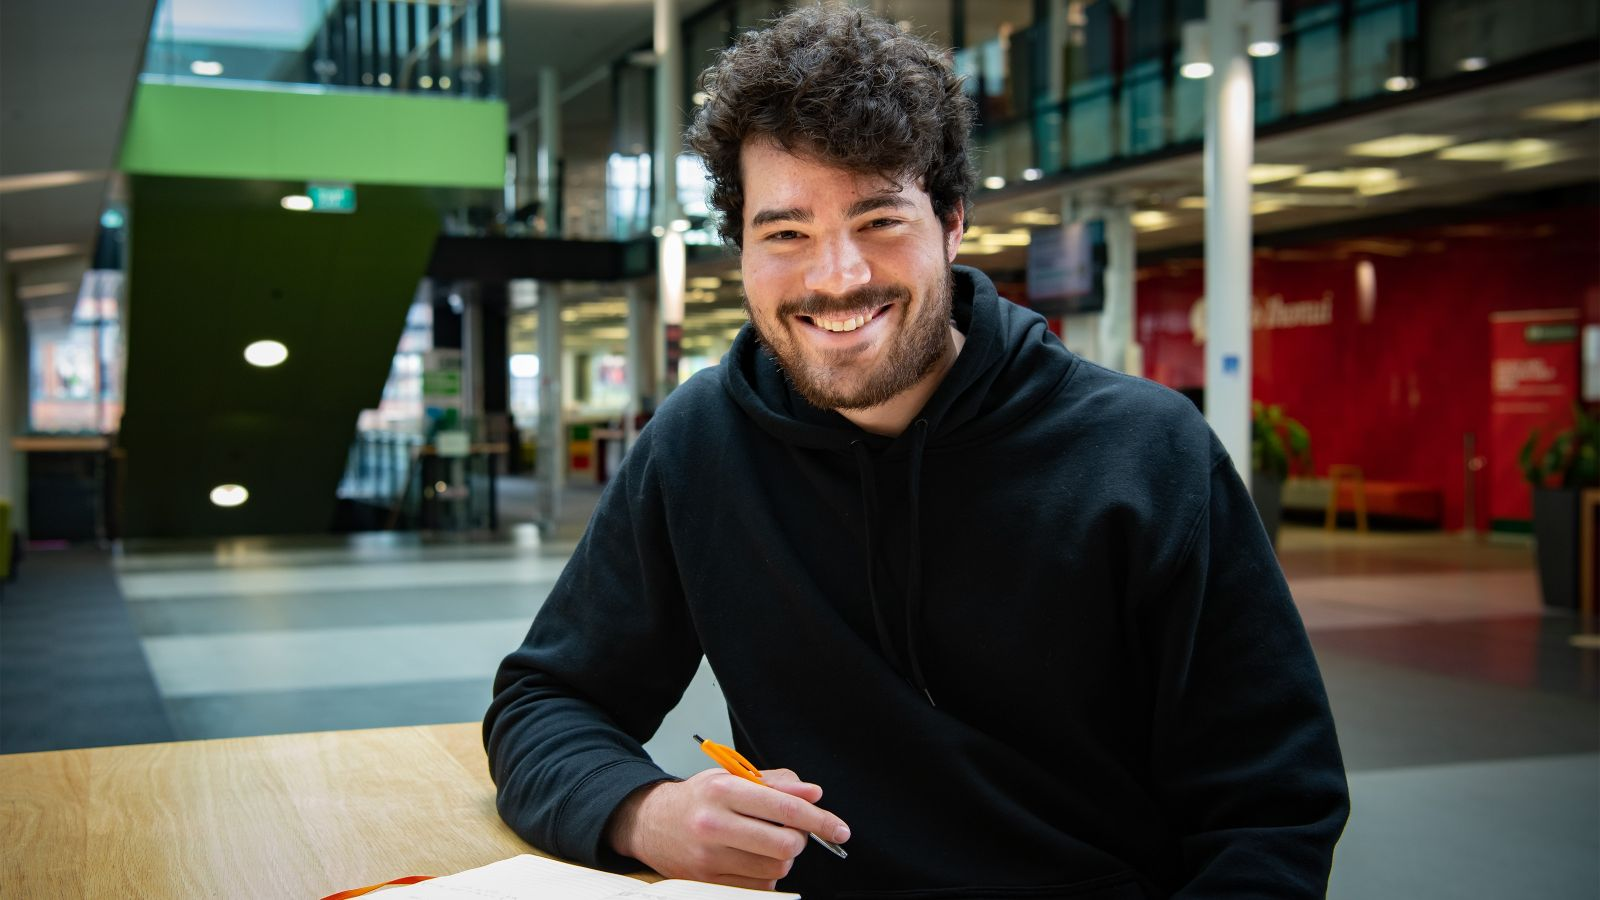 Anthony Charsley smiling while taking some notes